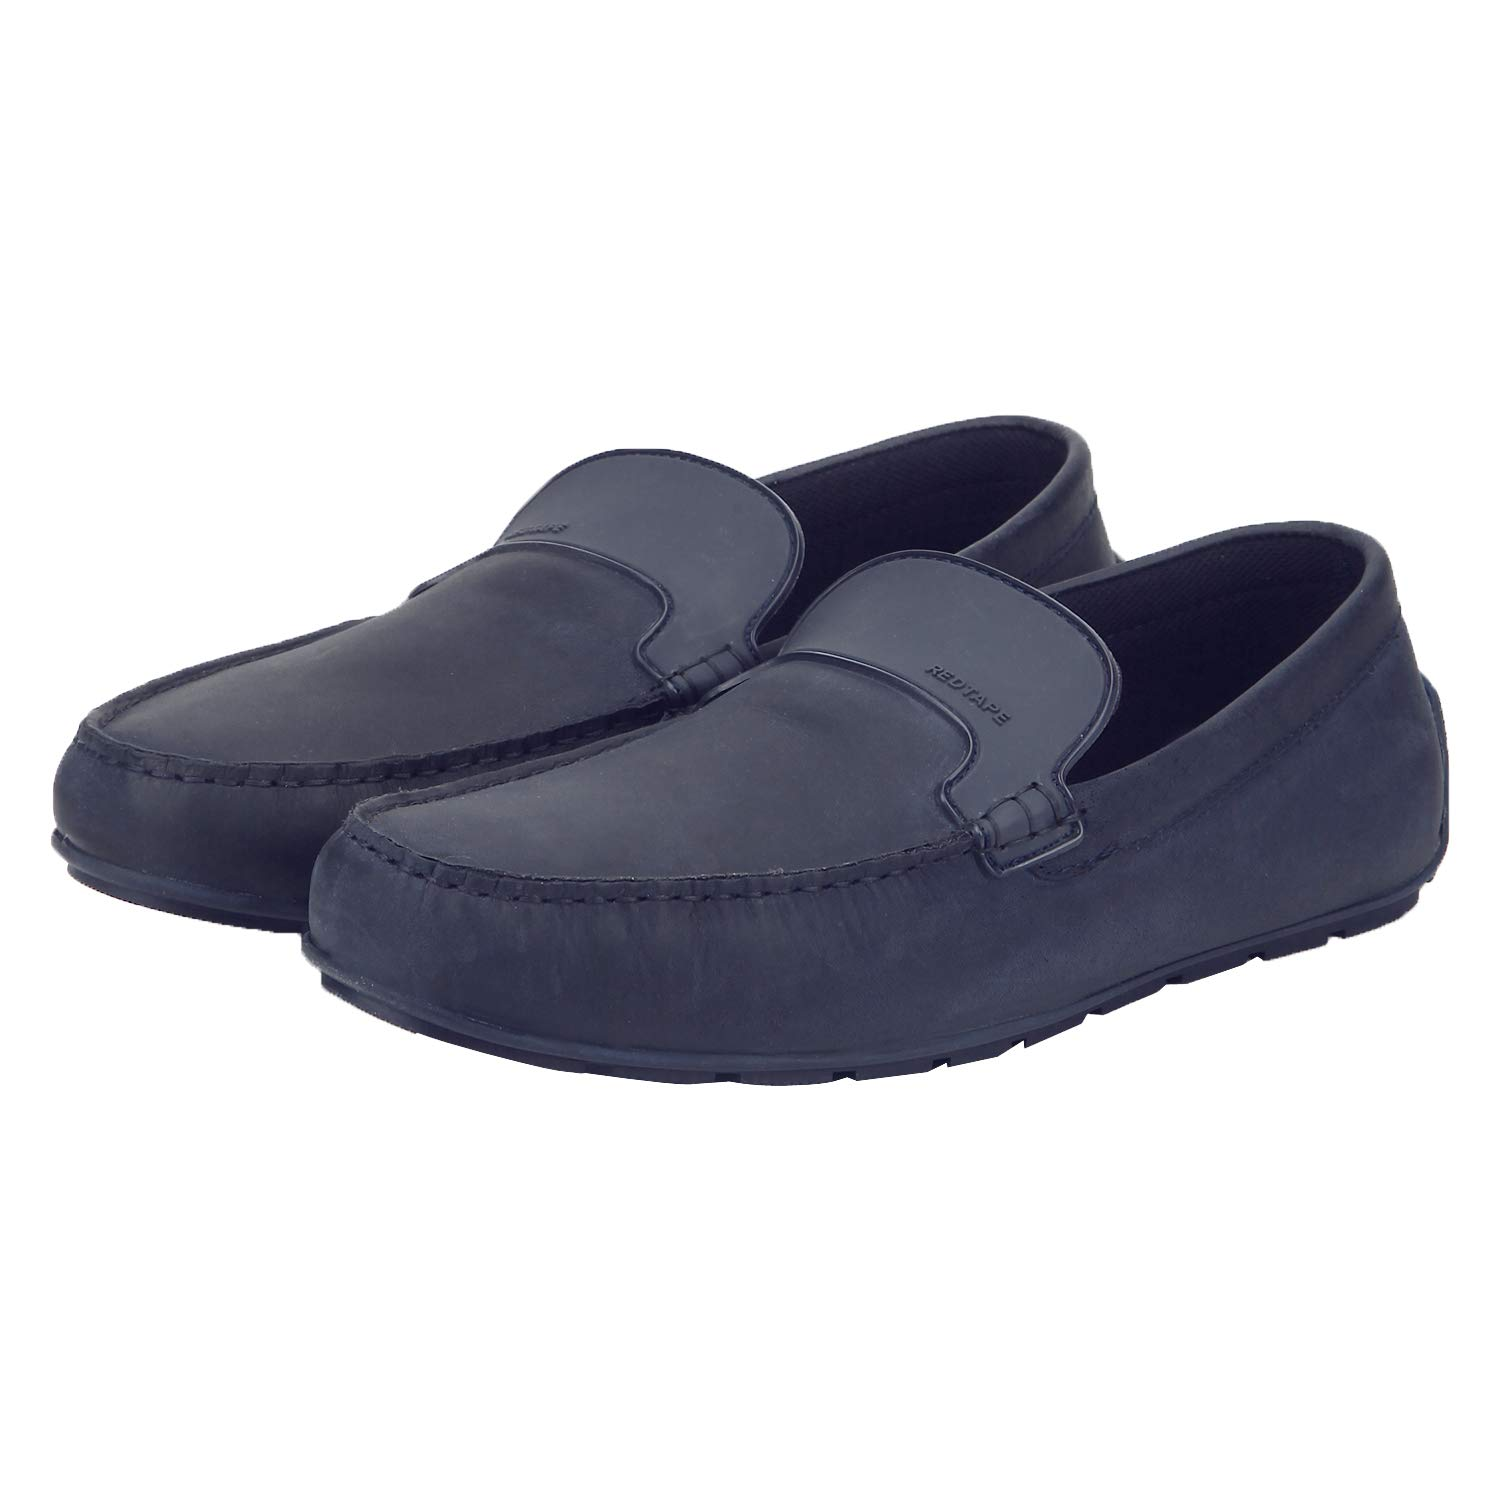 Buy Red Tape Loafer at Amazon.in